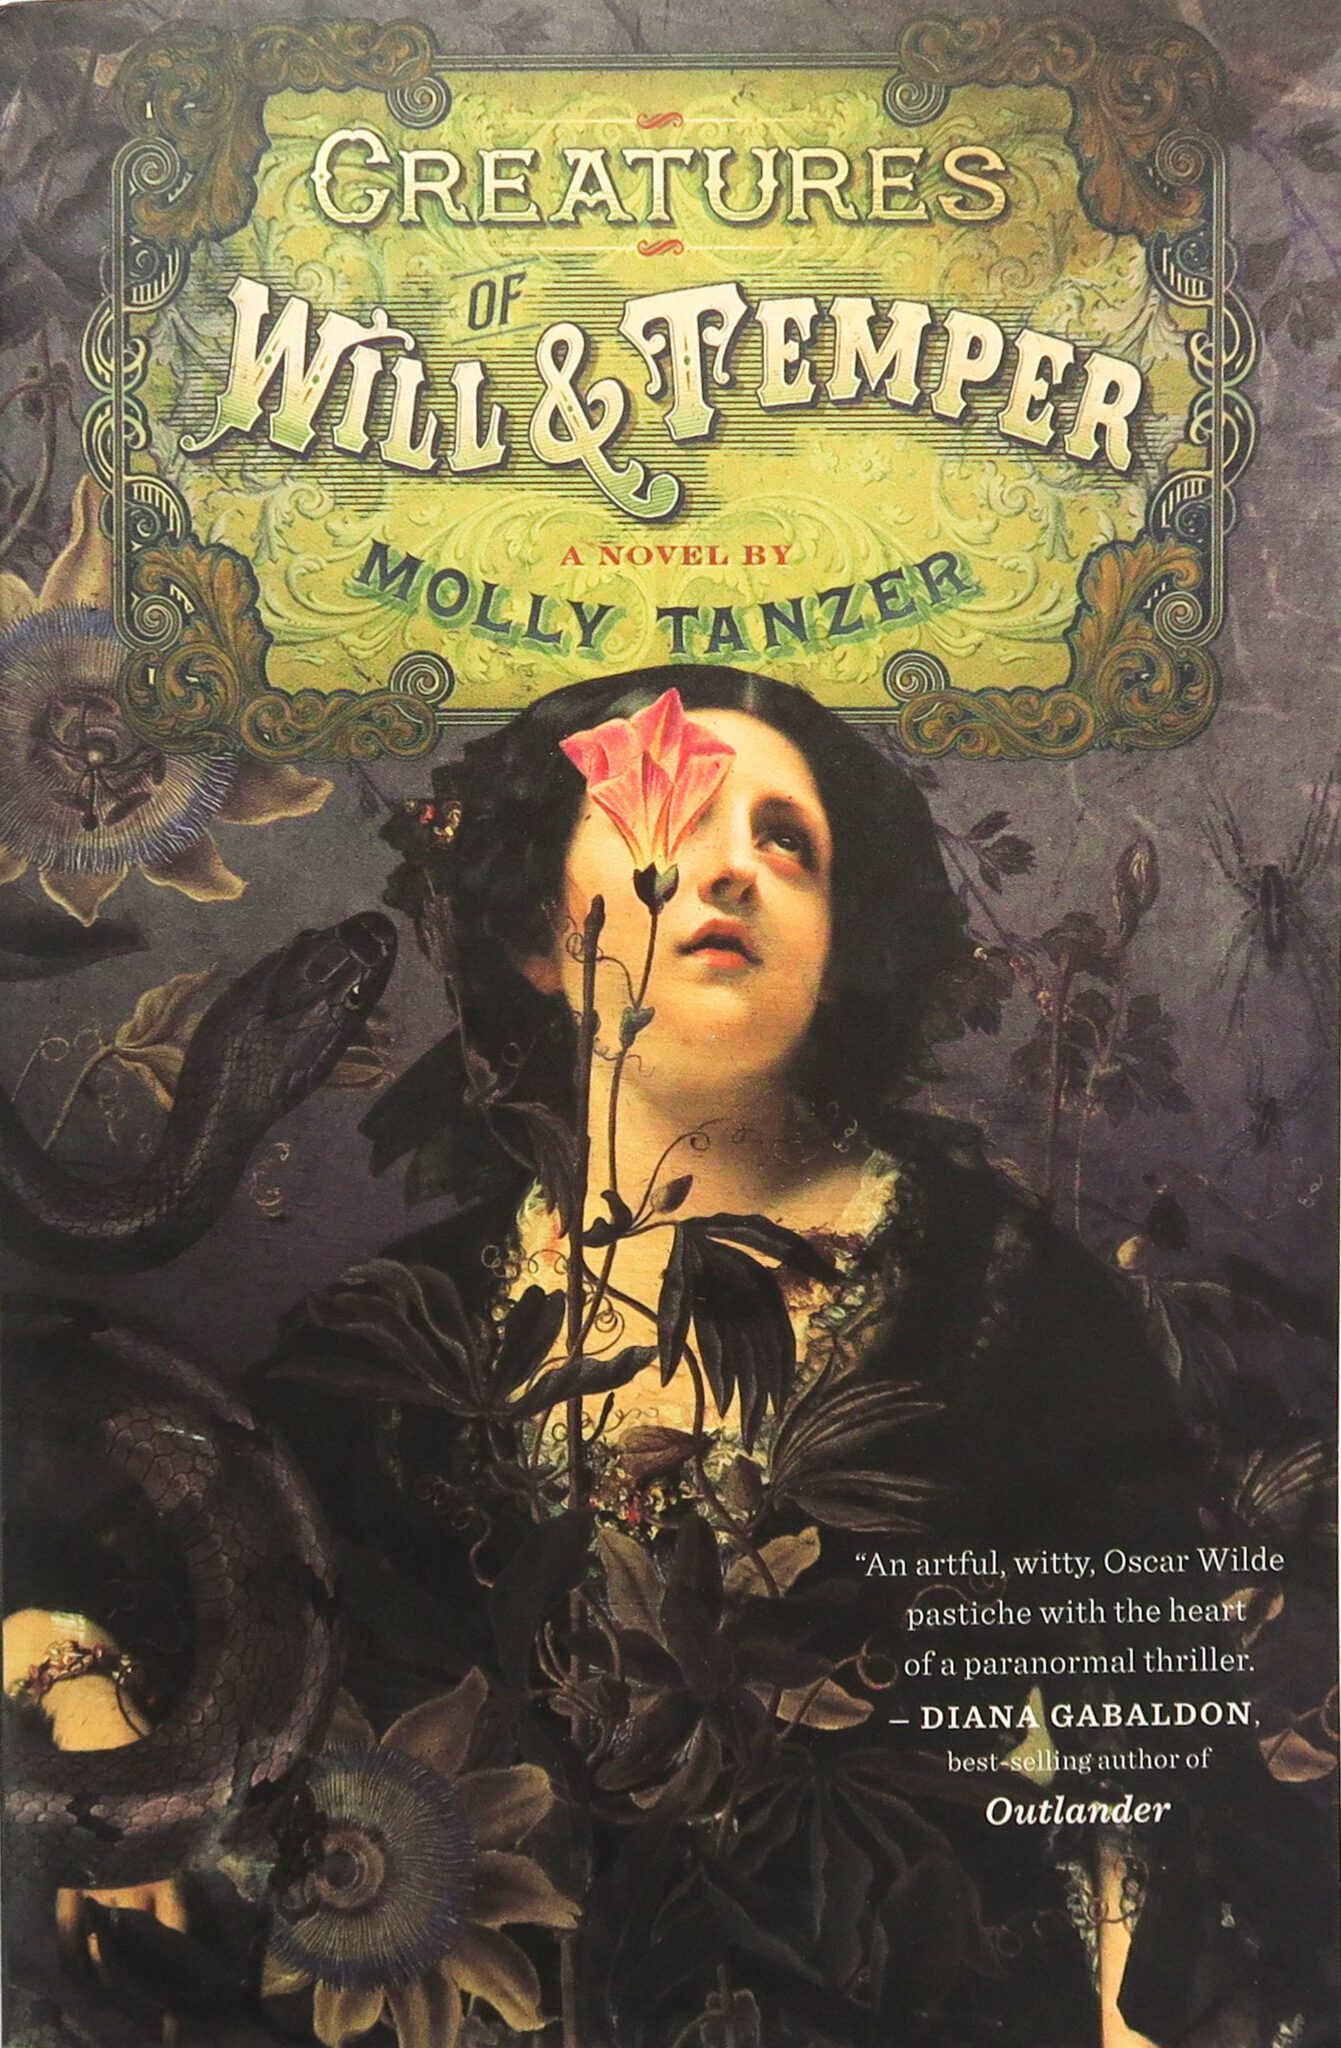 Molly Tanzer: Really? Victorian England Again?